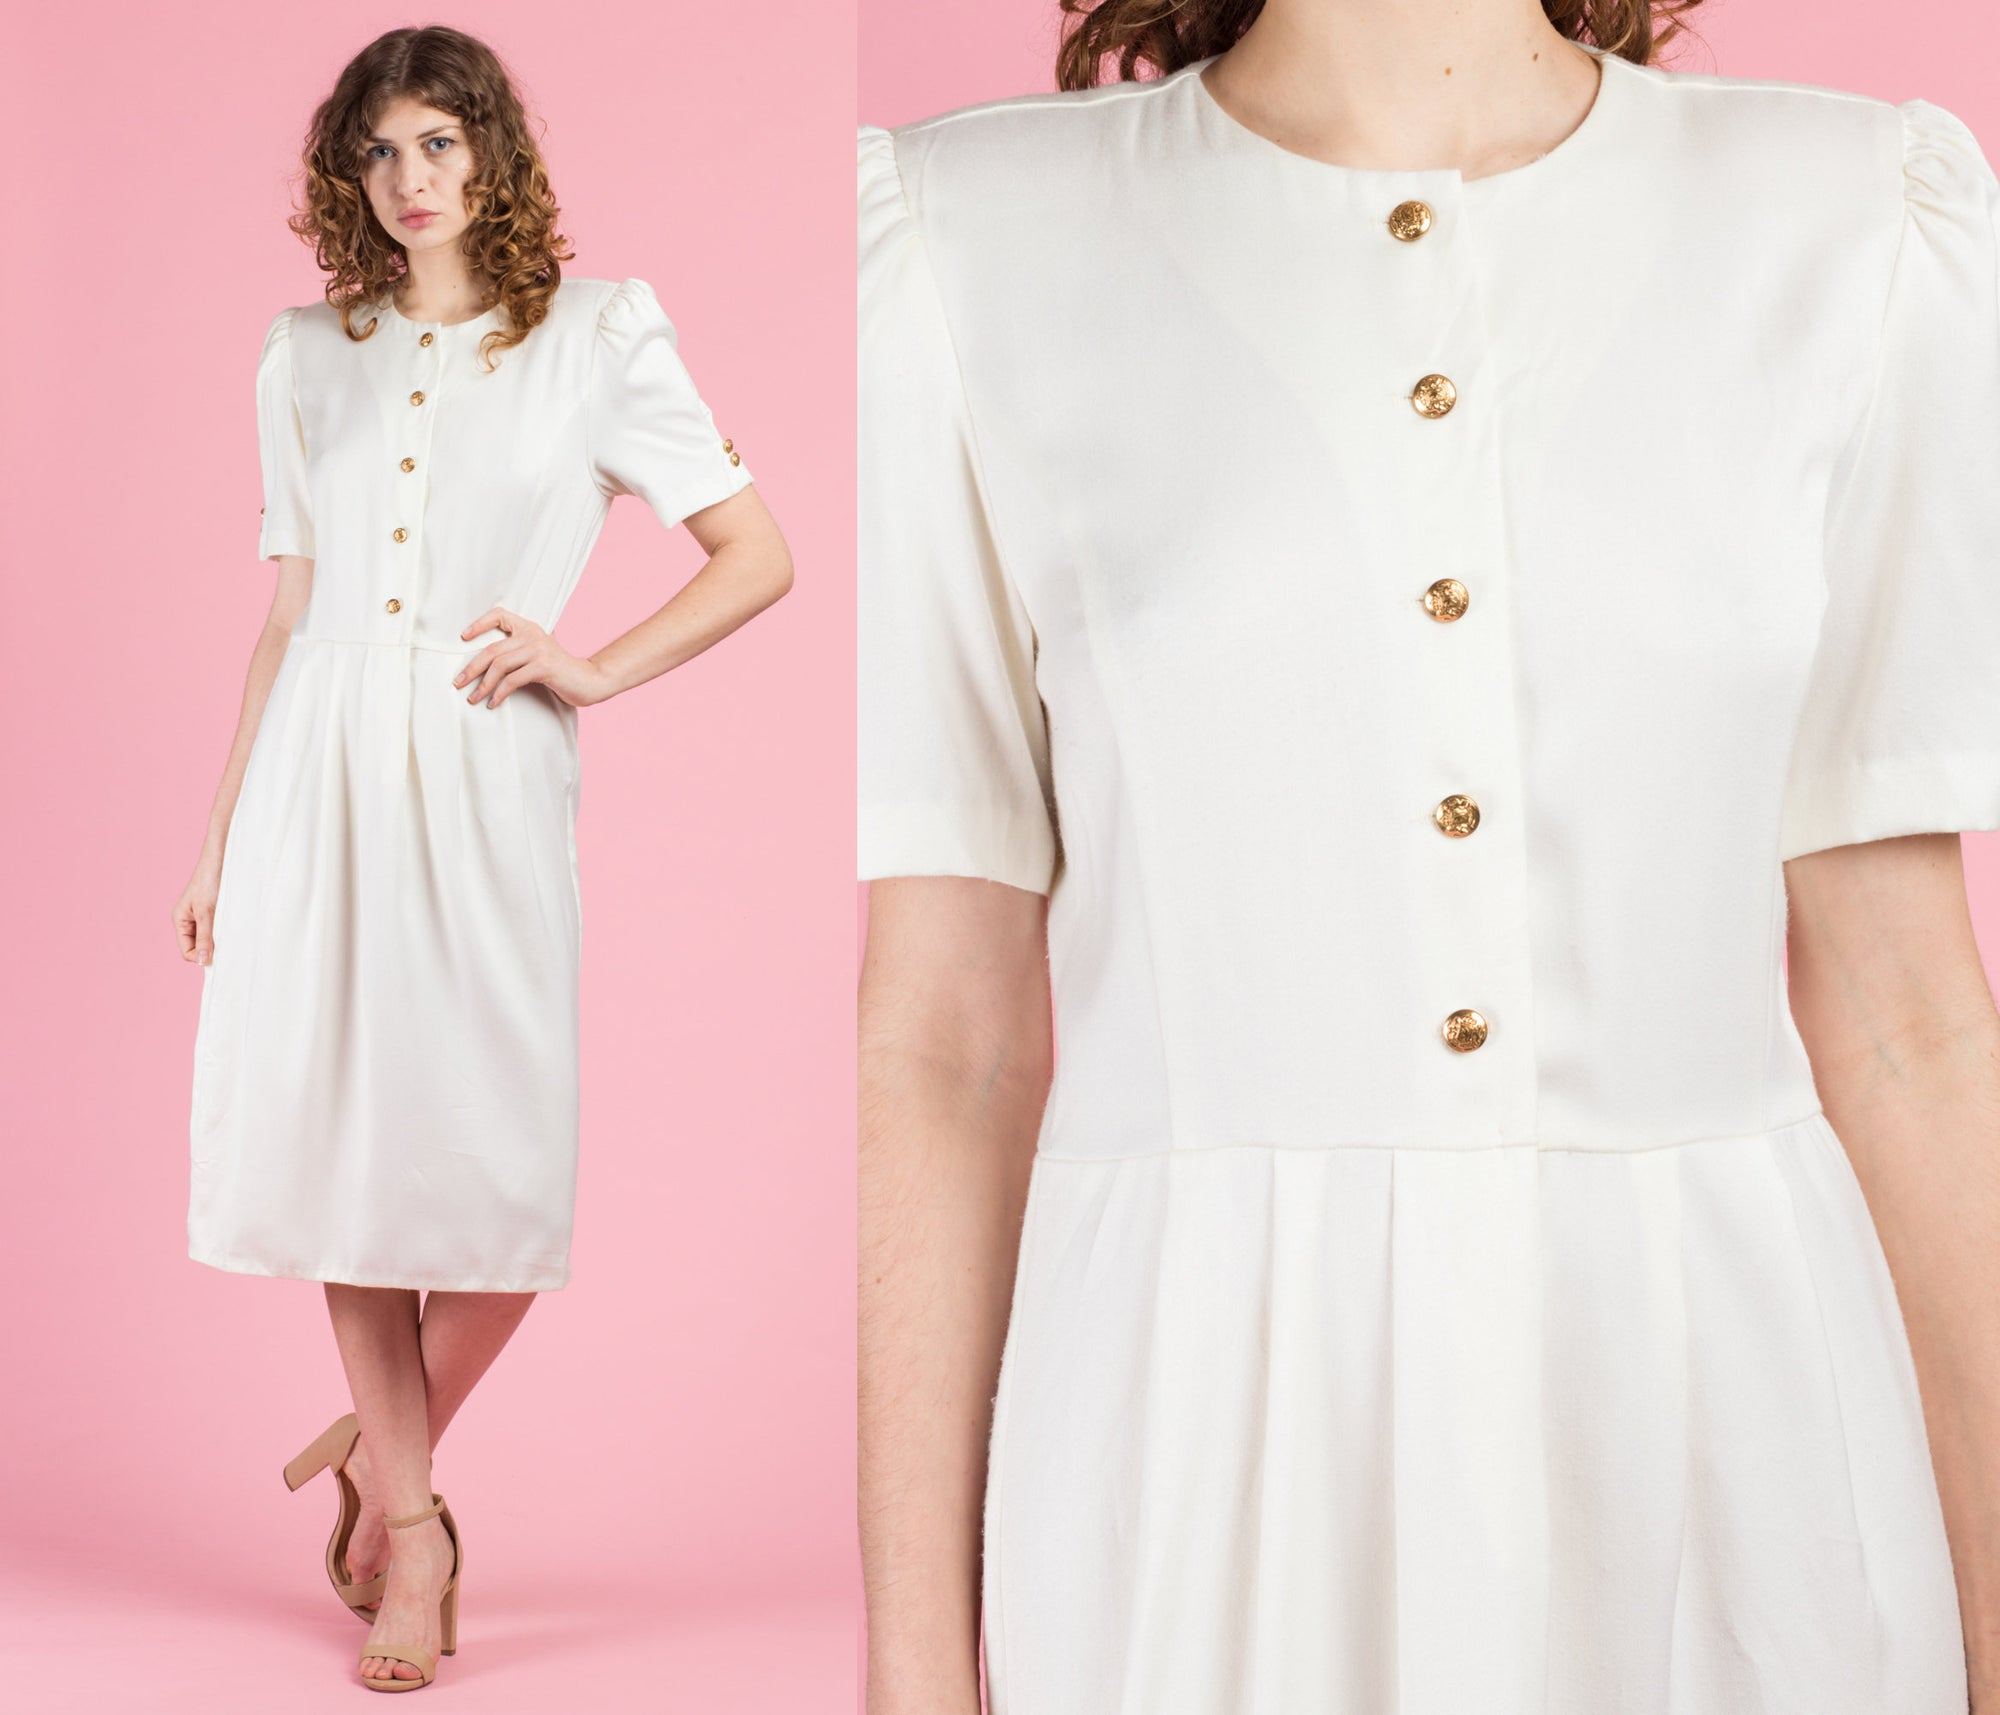 80s Minimalist White Midi Dress - Medium